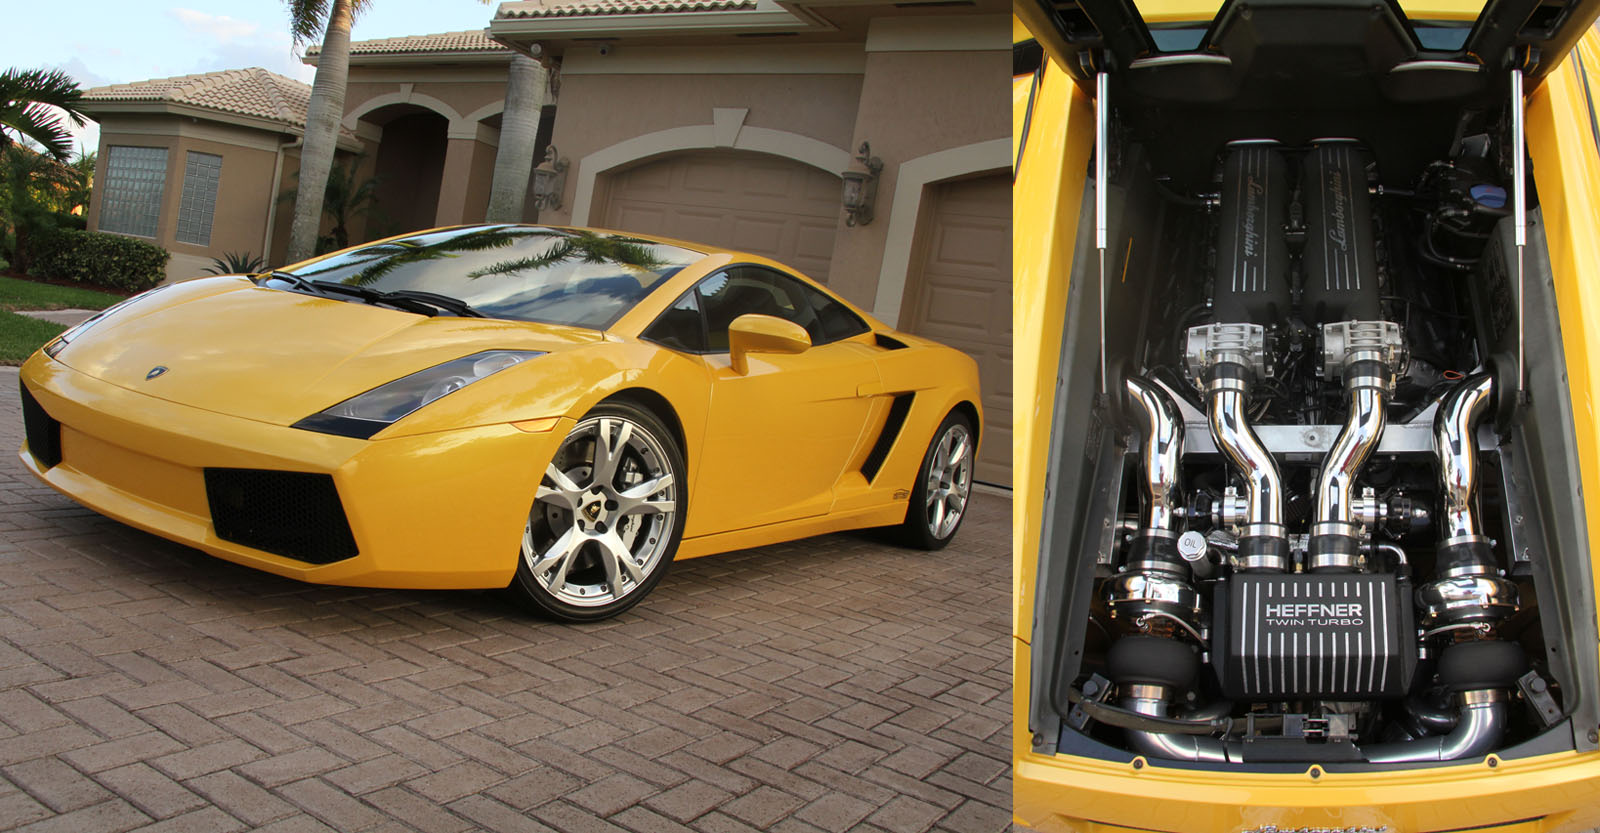 2006  Lamborghini Gallardo Twin Turbo Heffner Bolt-on Kit picture, mods, upgrades